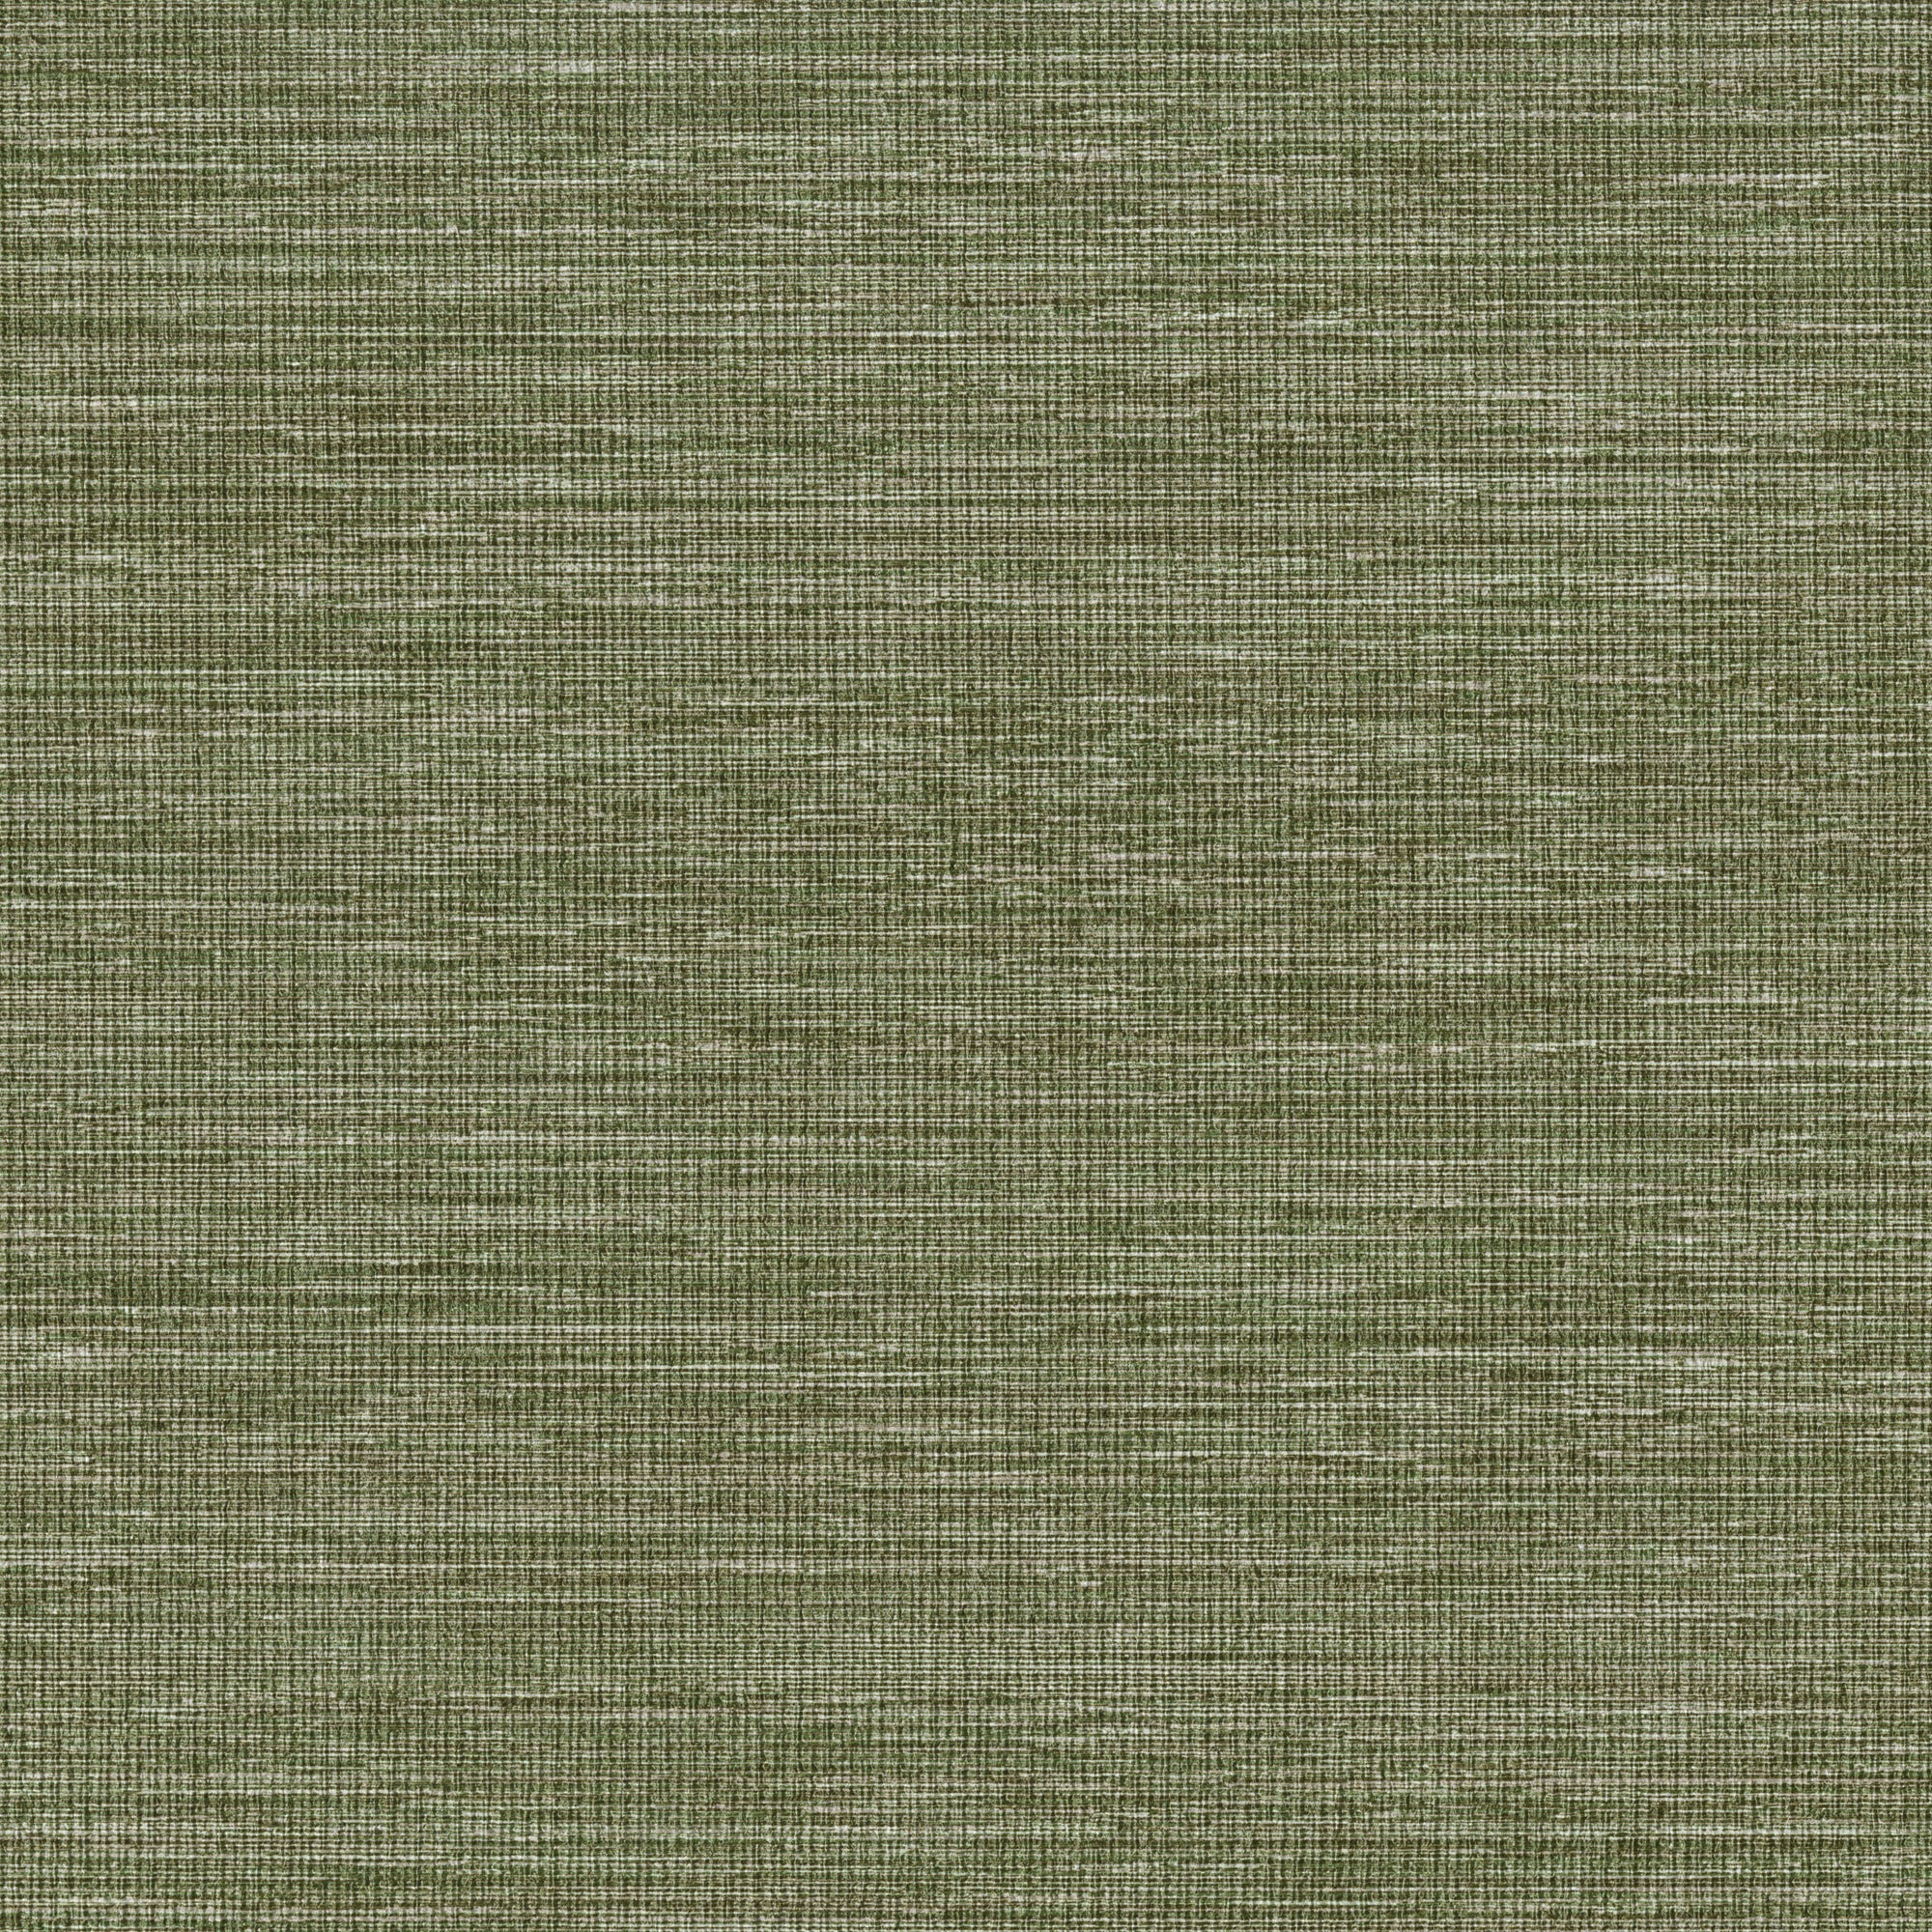 Faux Grasscloth In Green, 8161 73